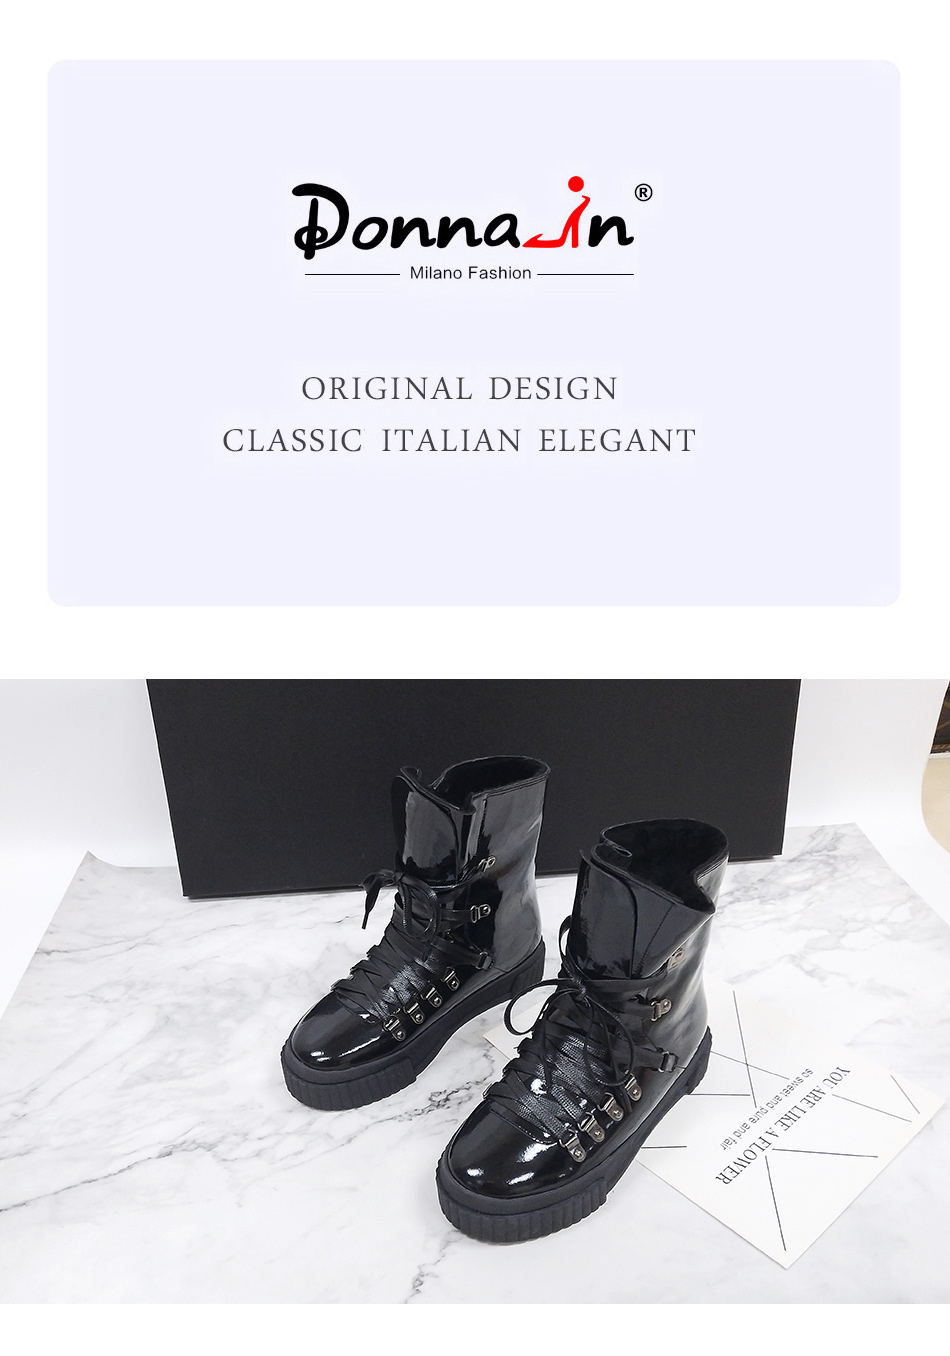 Donna-in 2018 Fashion Winter Ankle Boots Women Leather Platform High Heel Lace Up Short Pulsh Warm Female Boots Ladies Shoes (2)